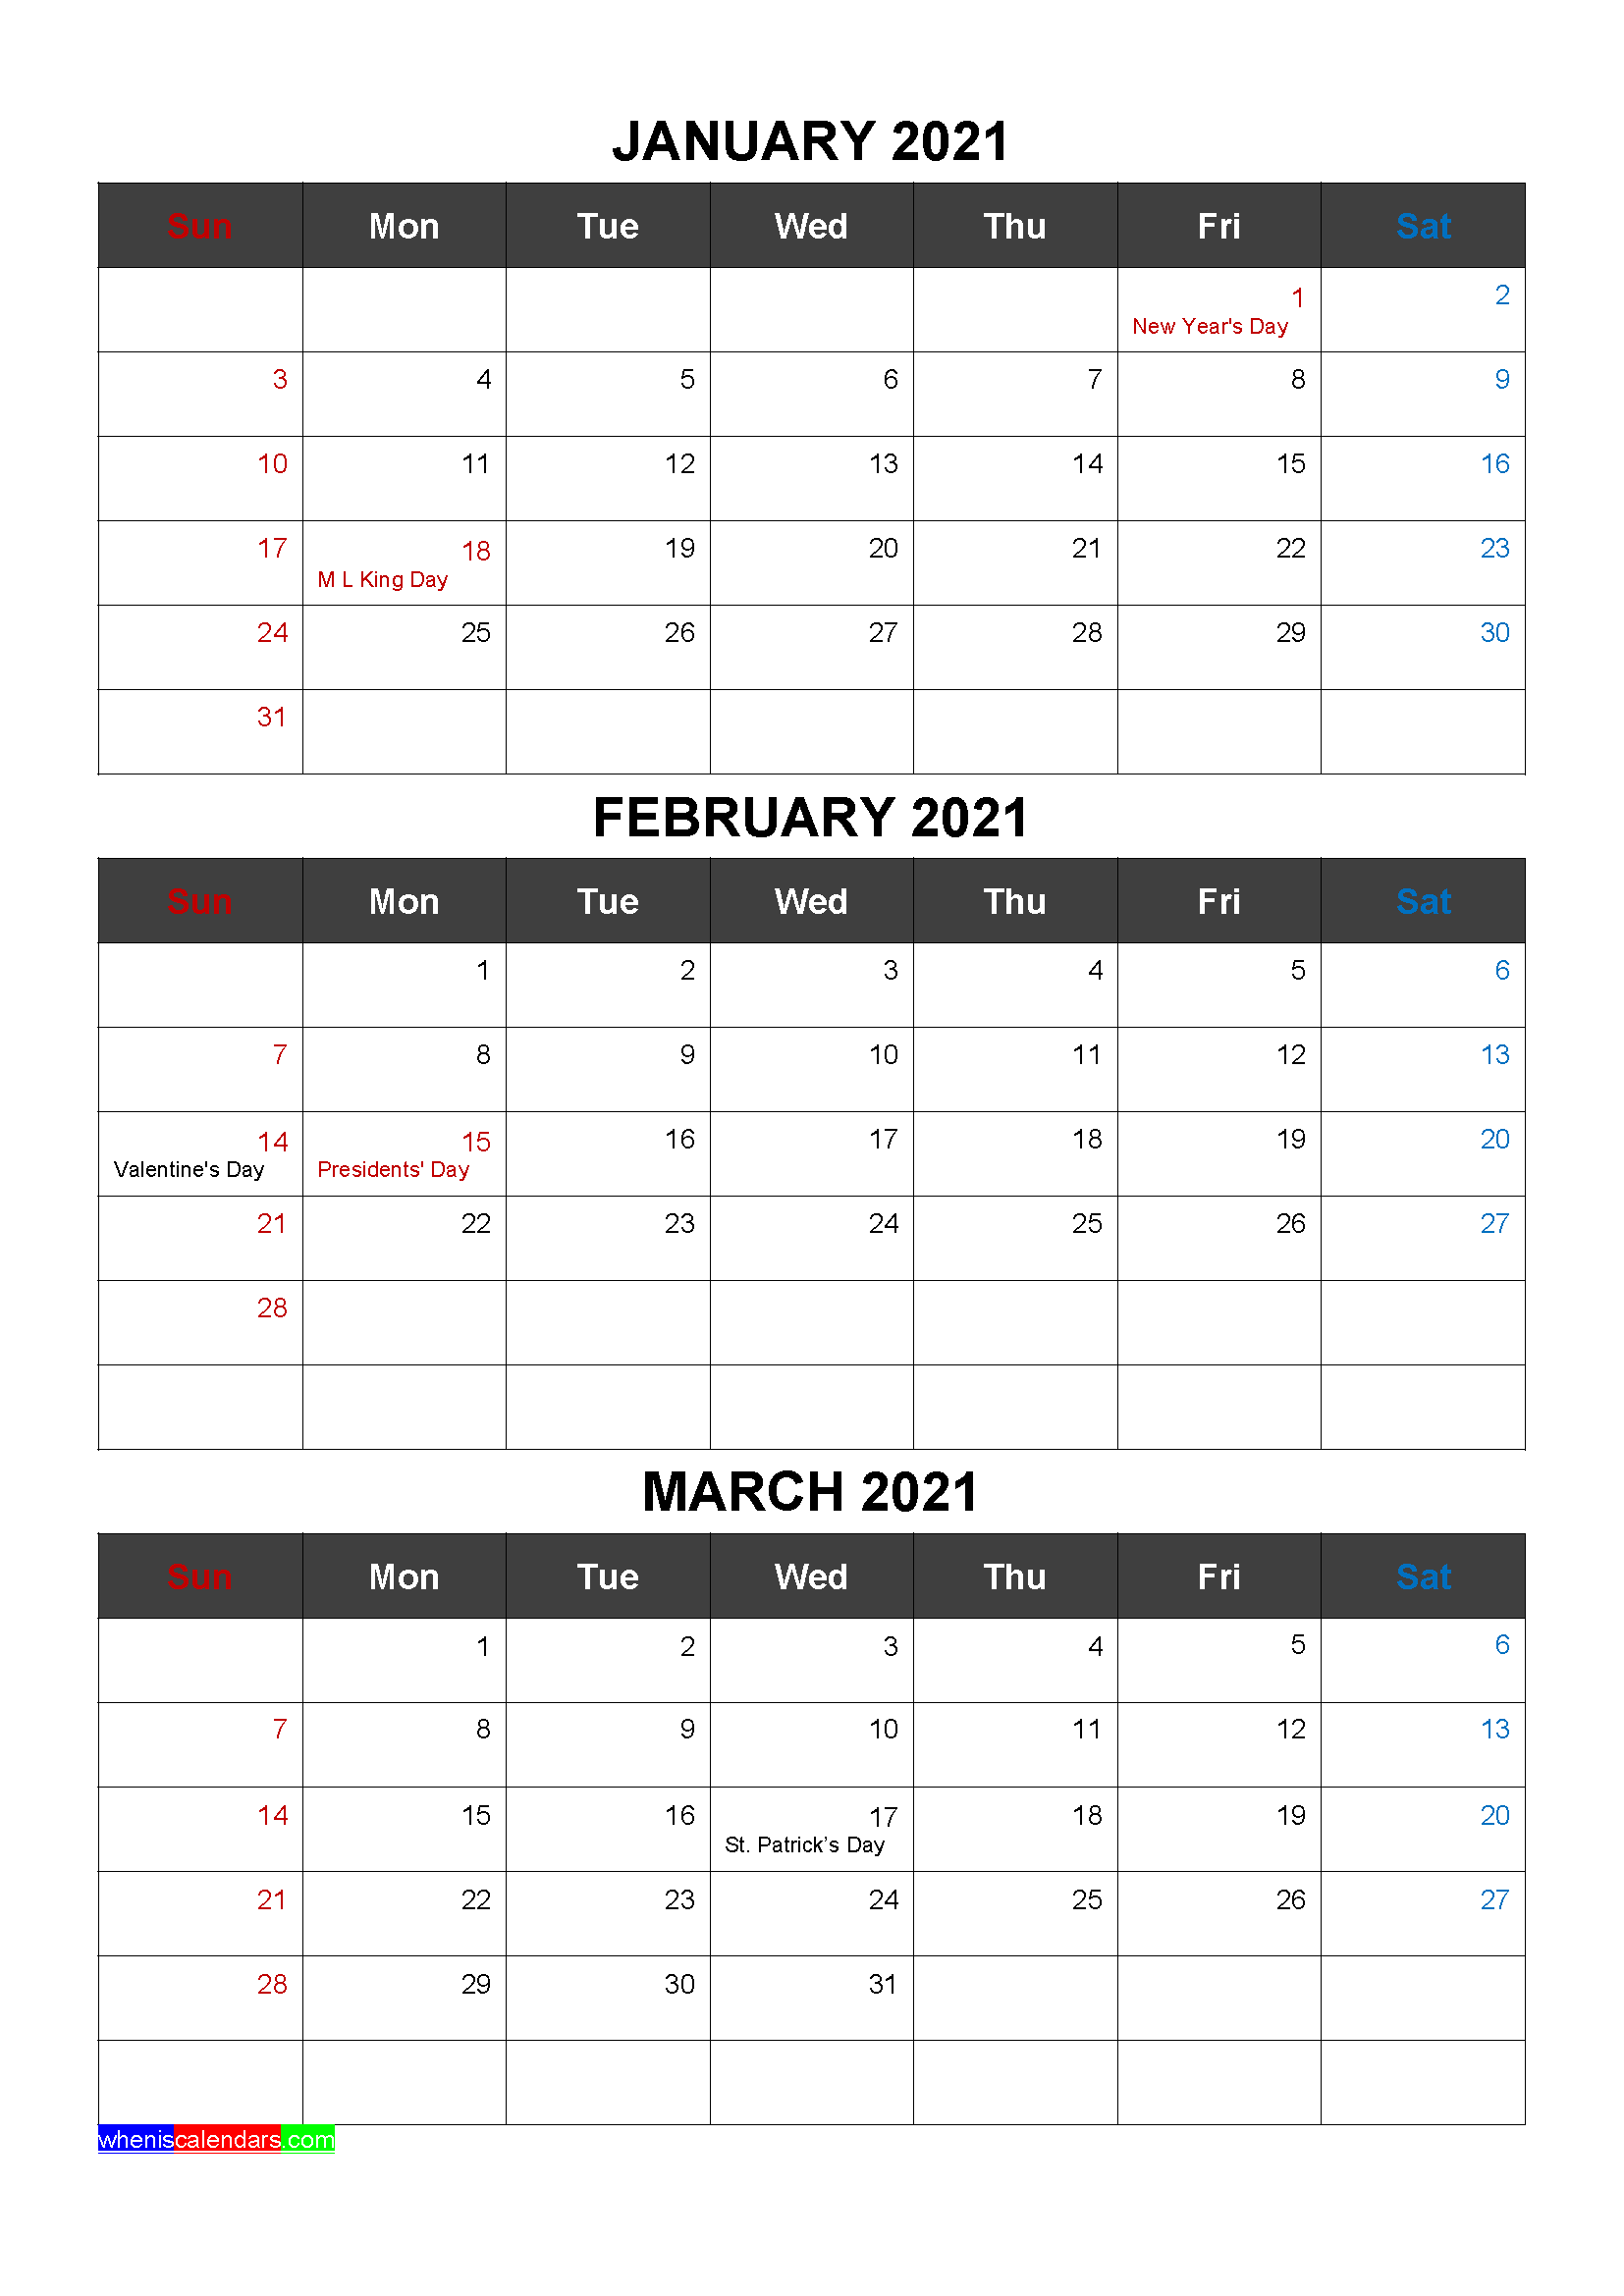 Free Calendar January February March 2021 with Holidays